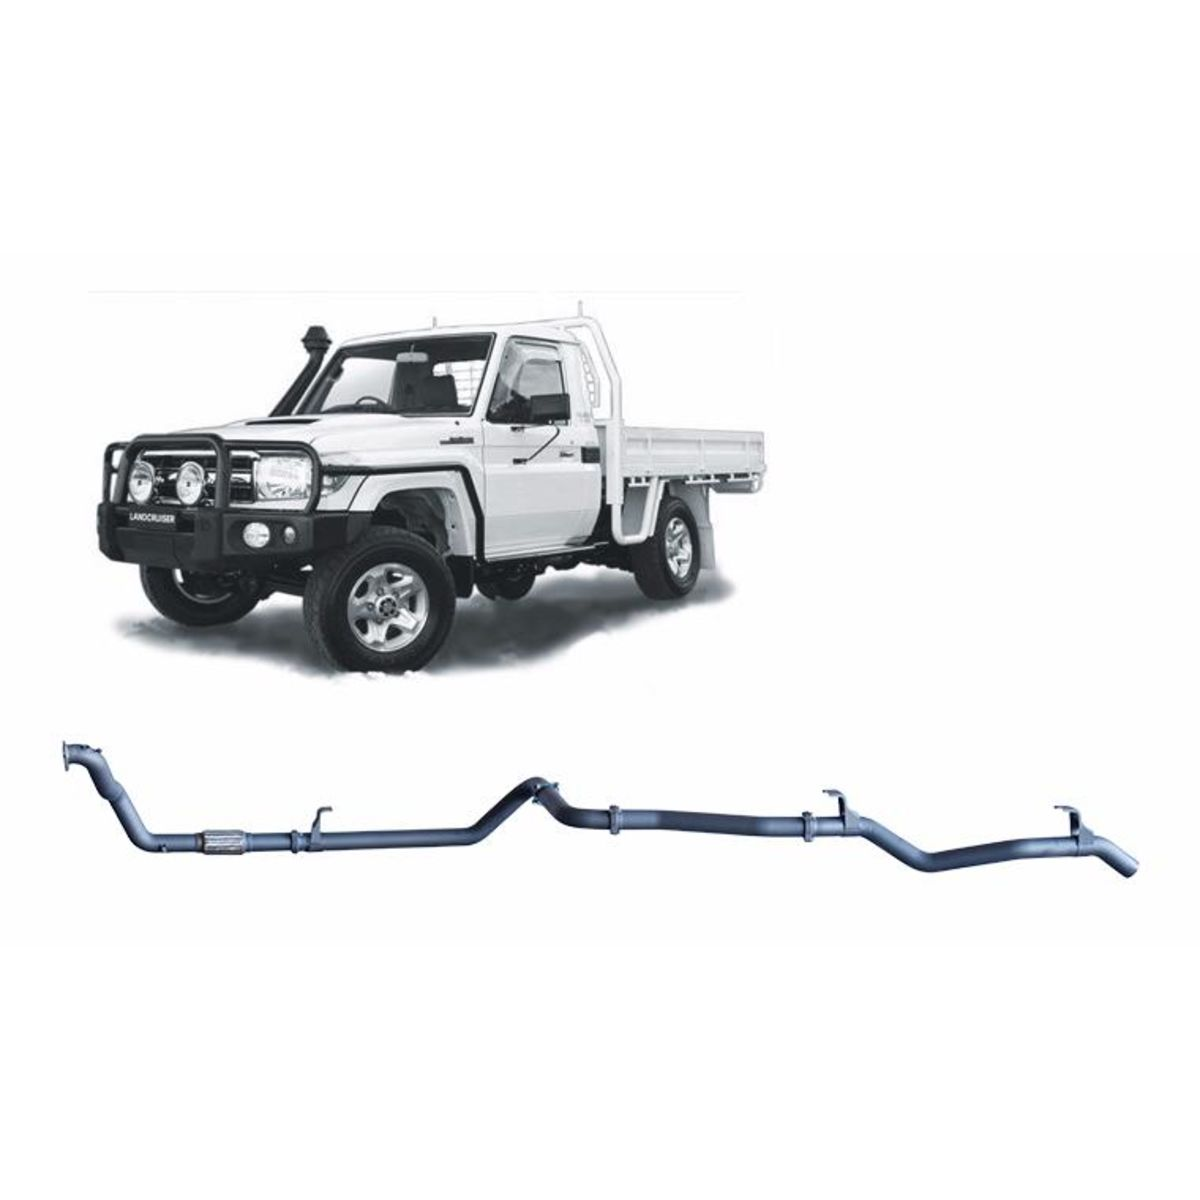 Redback Extreme Duty Exhaust to suit Toyota Landcruiser 79 Series 4.2L 1HZ (10/1999 - 01/2007)